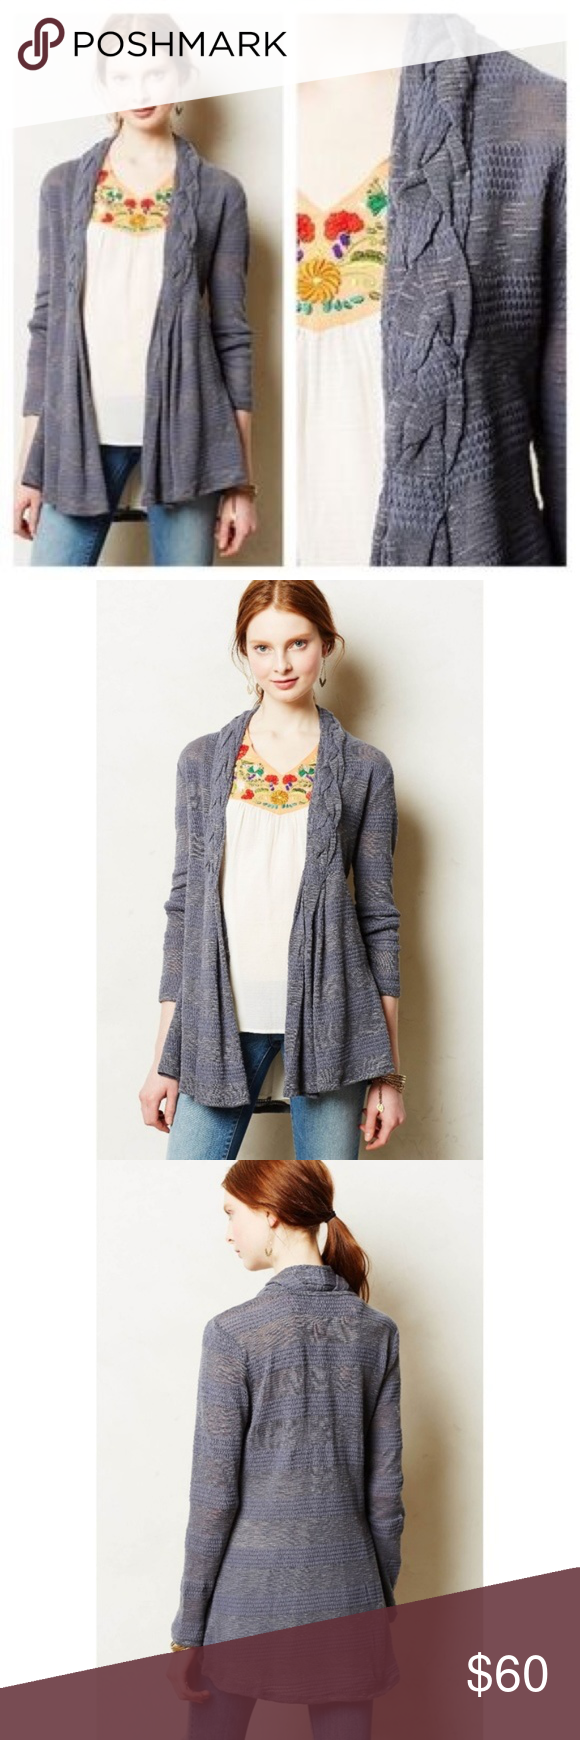 "ANTHROPOLOGIE Braided Lapel Cardigan Sweater {O51} Anthropologie One September Braided Lapel Cardi Cardigan Cotton Blend Retail: $78  Size Large Length: 33"" Chest: 21"" armpit to armpit across back  Gently worn, no flaws!  We love an easy-going piece that doesn't put up a fuss when the seasons change, like this fine gauge cardi from one.september.  By one.september Open front Polyester, cotton Anthropologie Sweaters Cardigans"